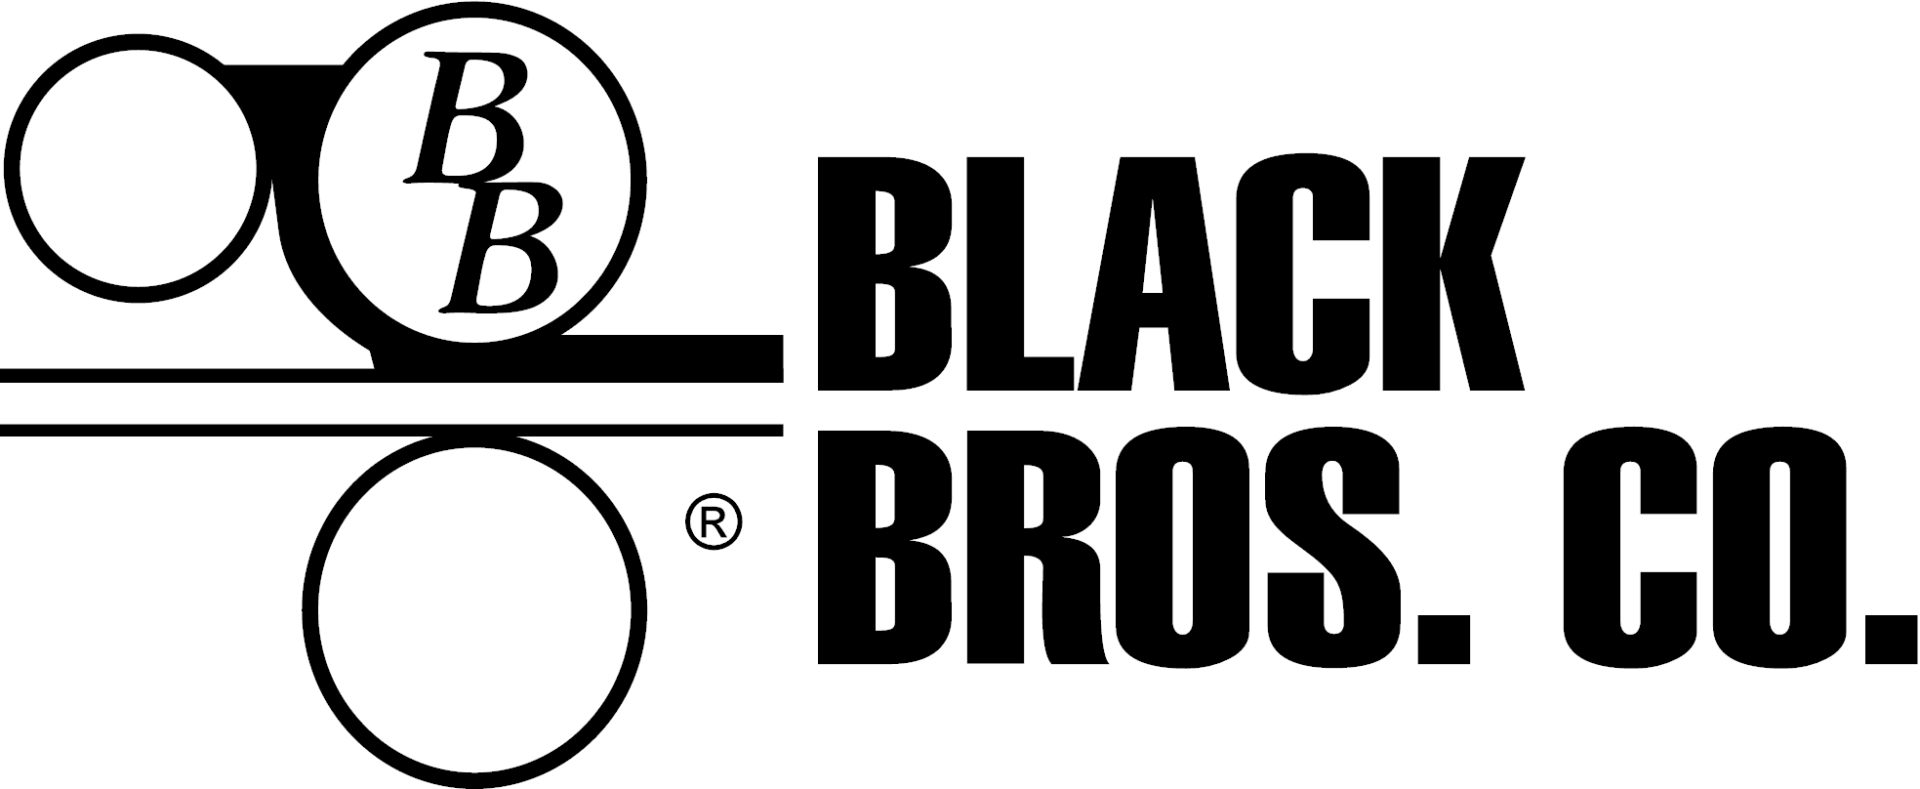 BB logo black-stacked